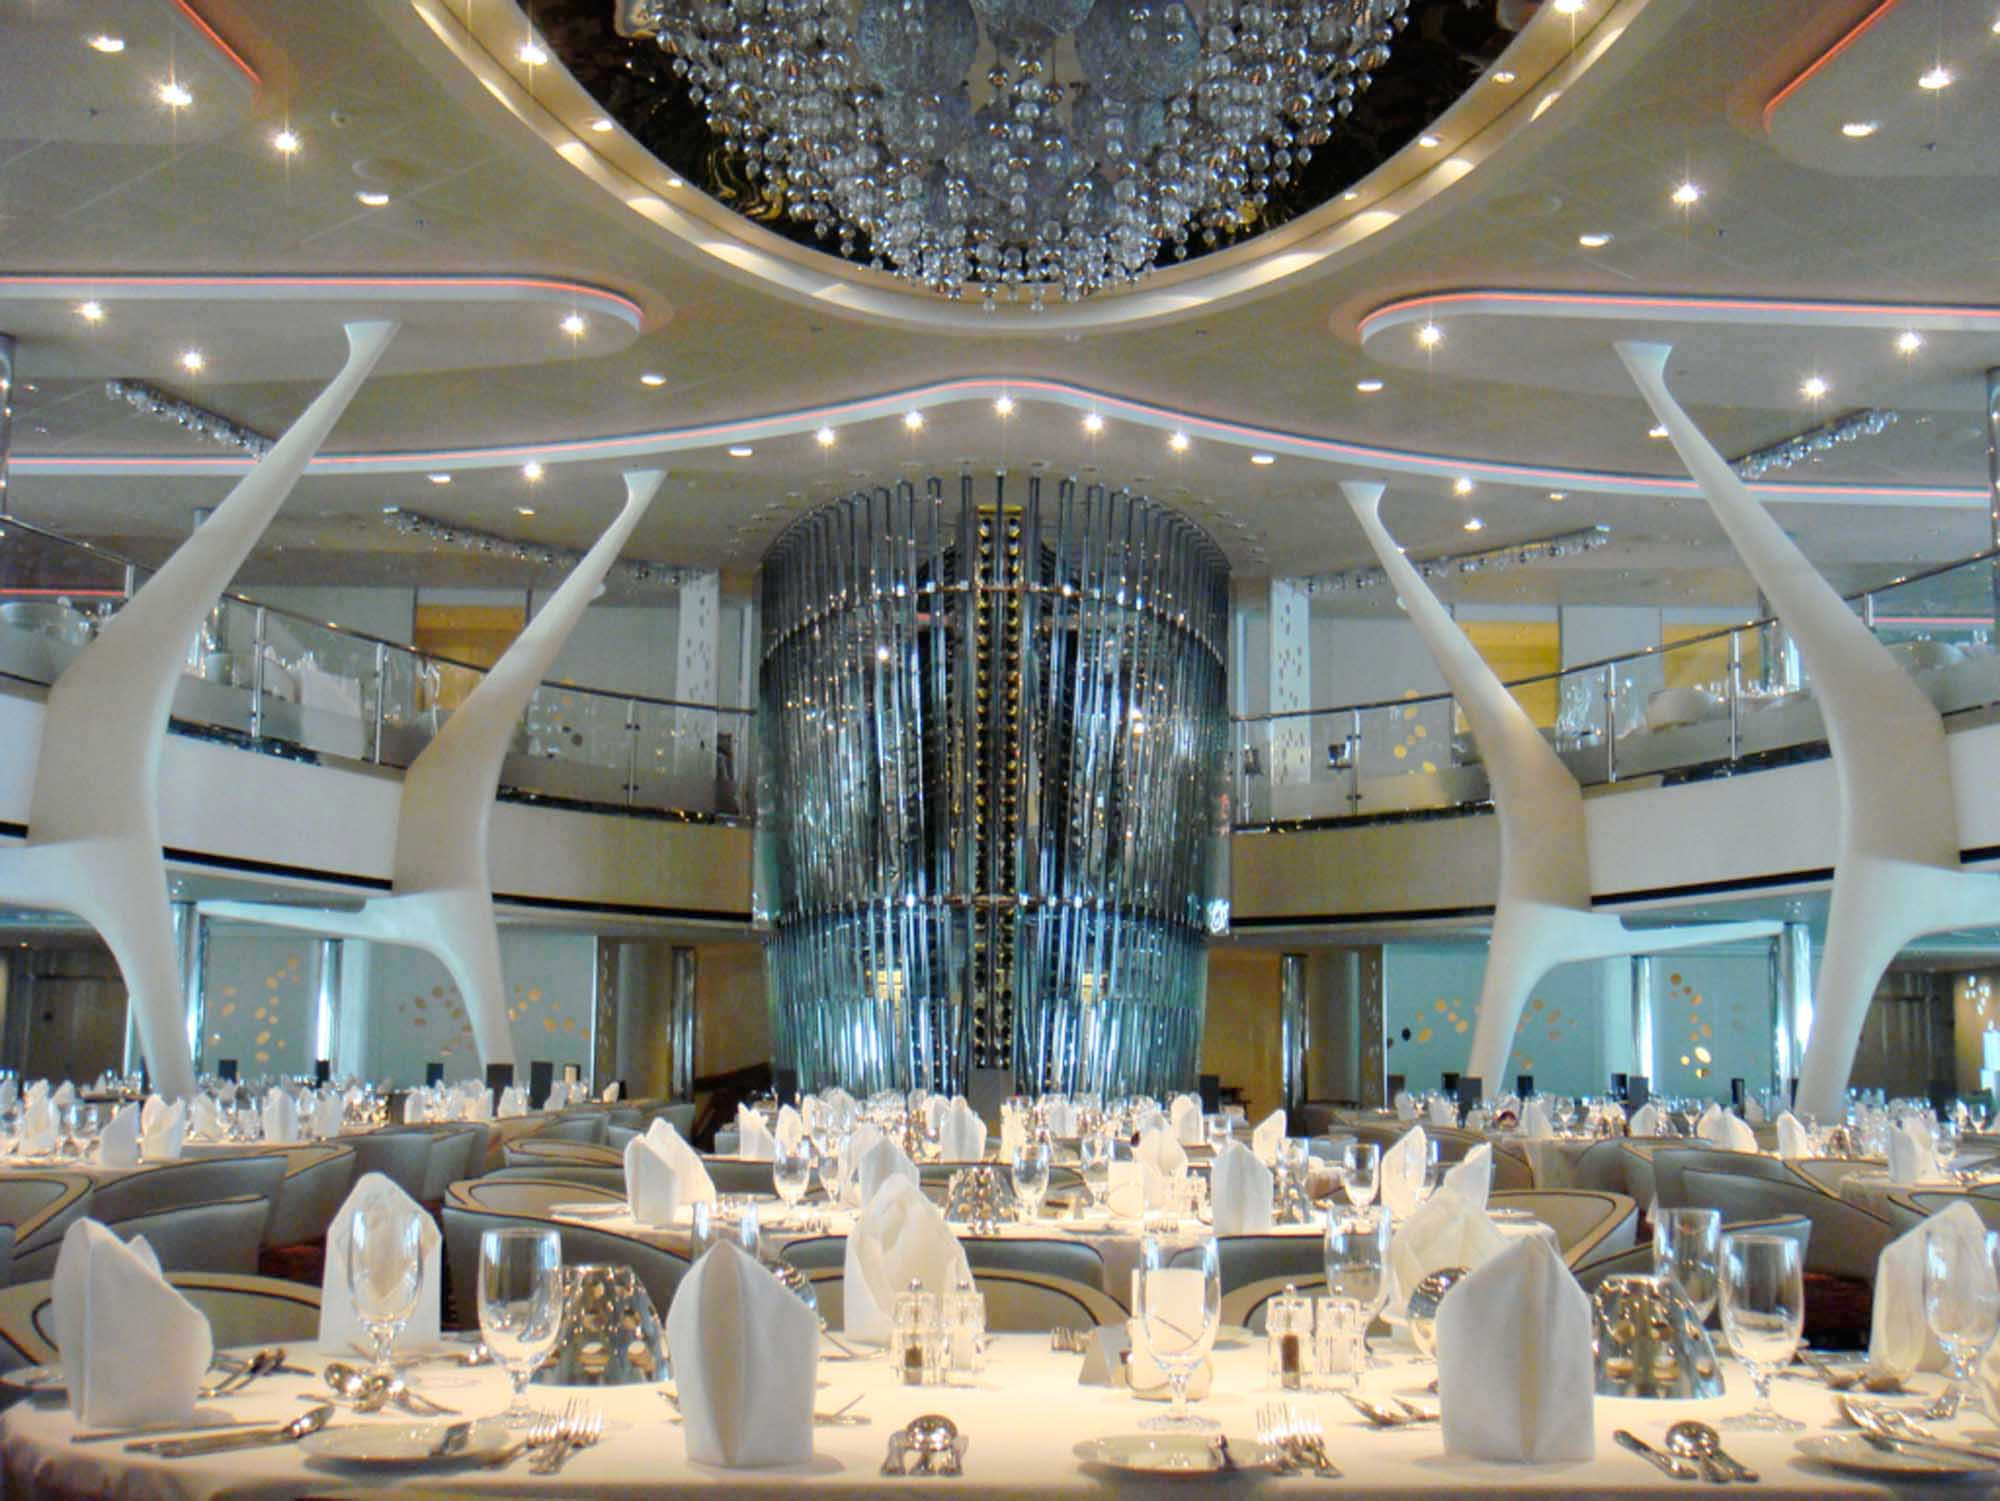 Specialty Cruise Dining Packages & Options - Celebrity Cruises